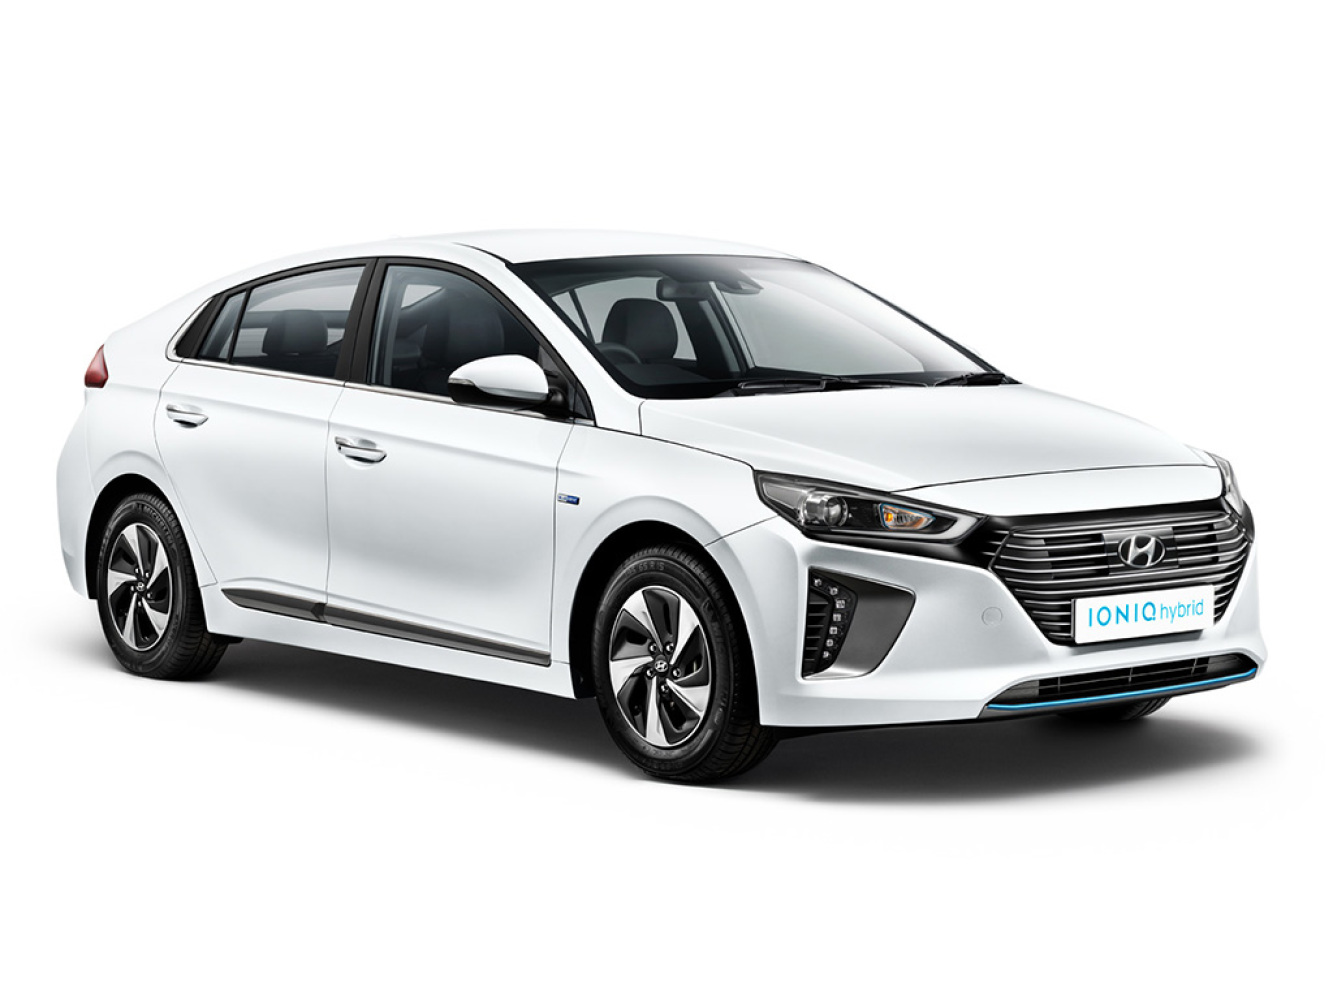 new hyundai ioniq 1 6 gdi plug in hybrid premium 5dr dct hatchback for sale bristol street. Black Bedroom Furniture Sets. Home Design Ideas